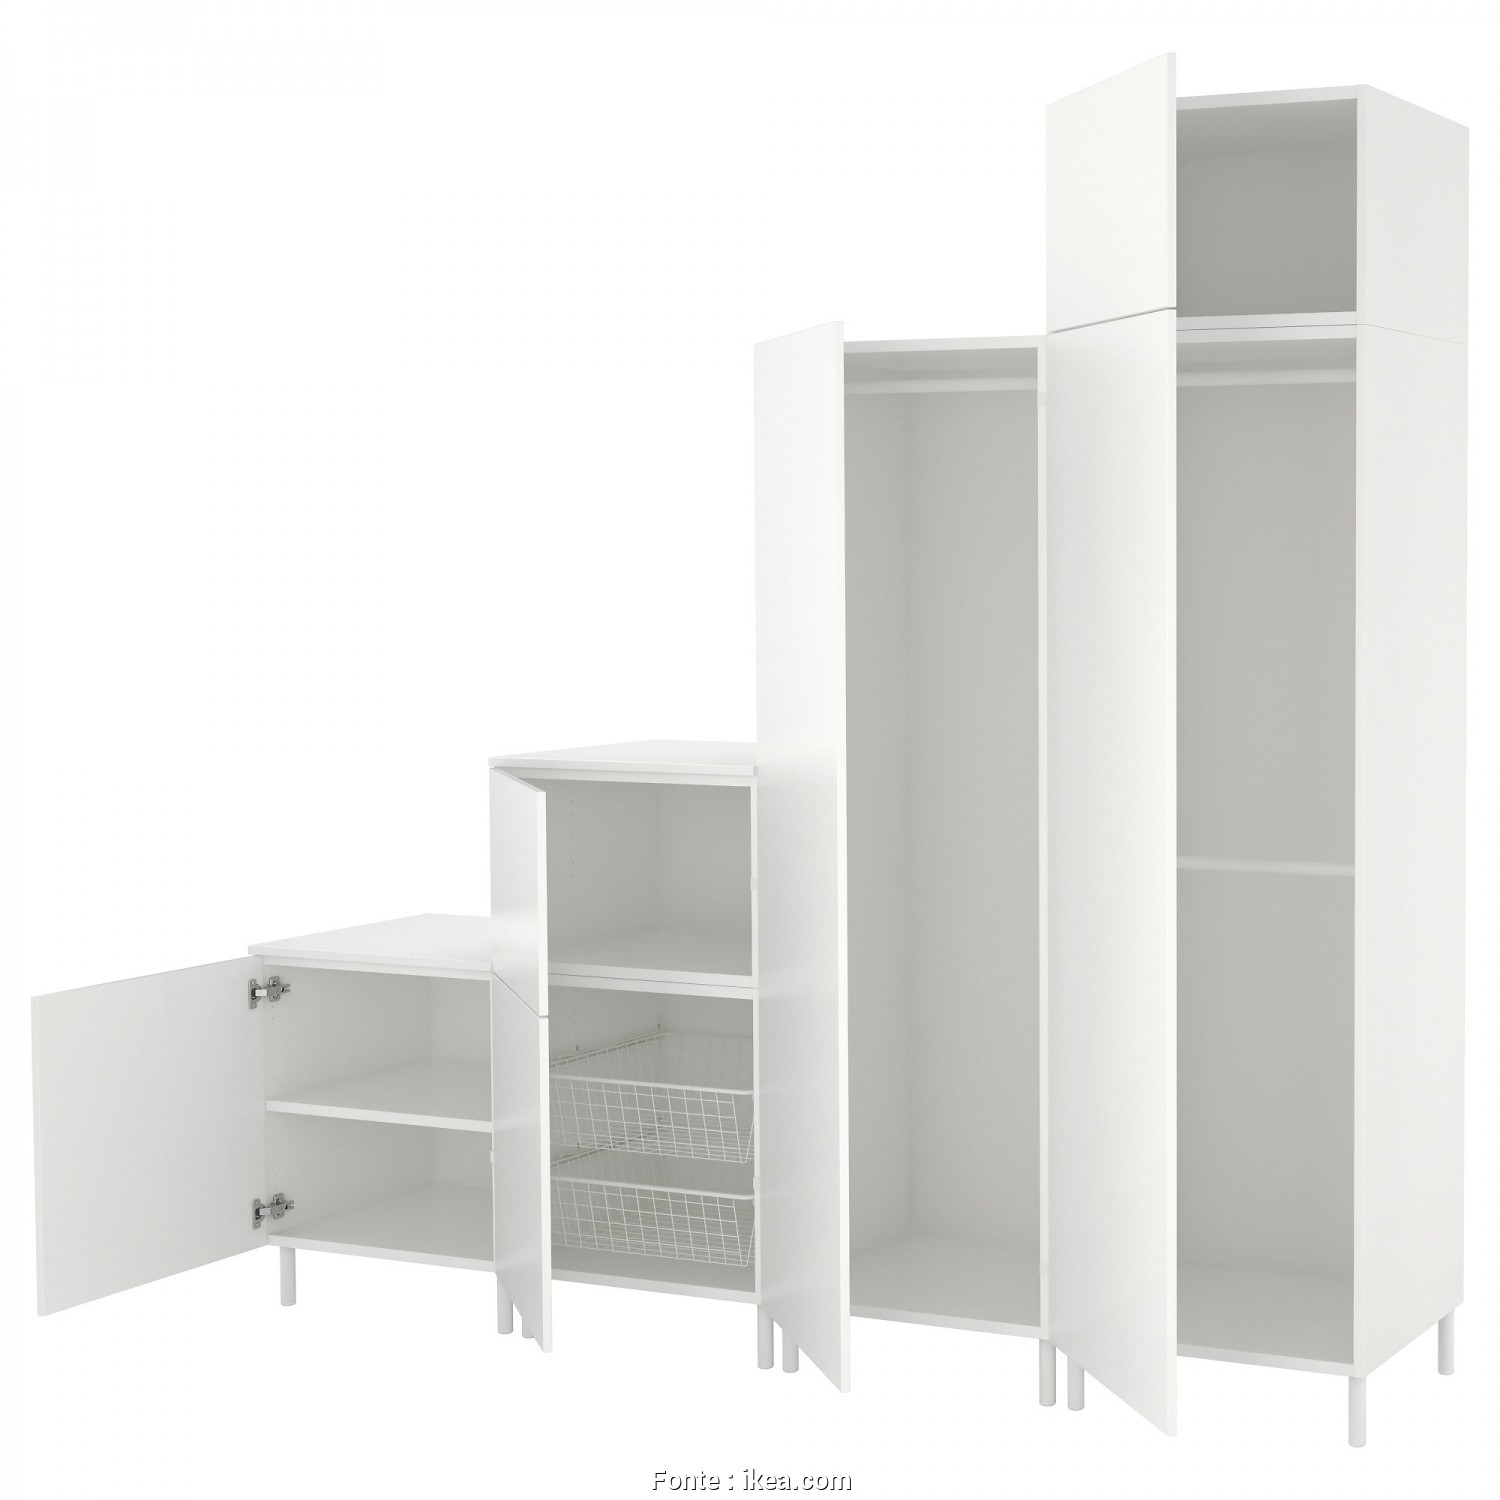 Copricuscini 60X60 Ikea, Esotico IKEA PLATSA Wardrobe Fits Perfectly Under A Sloping Ceiling Or A Staircase